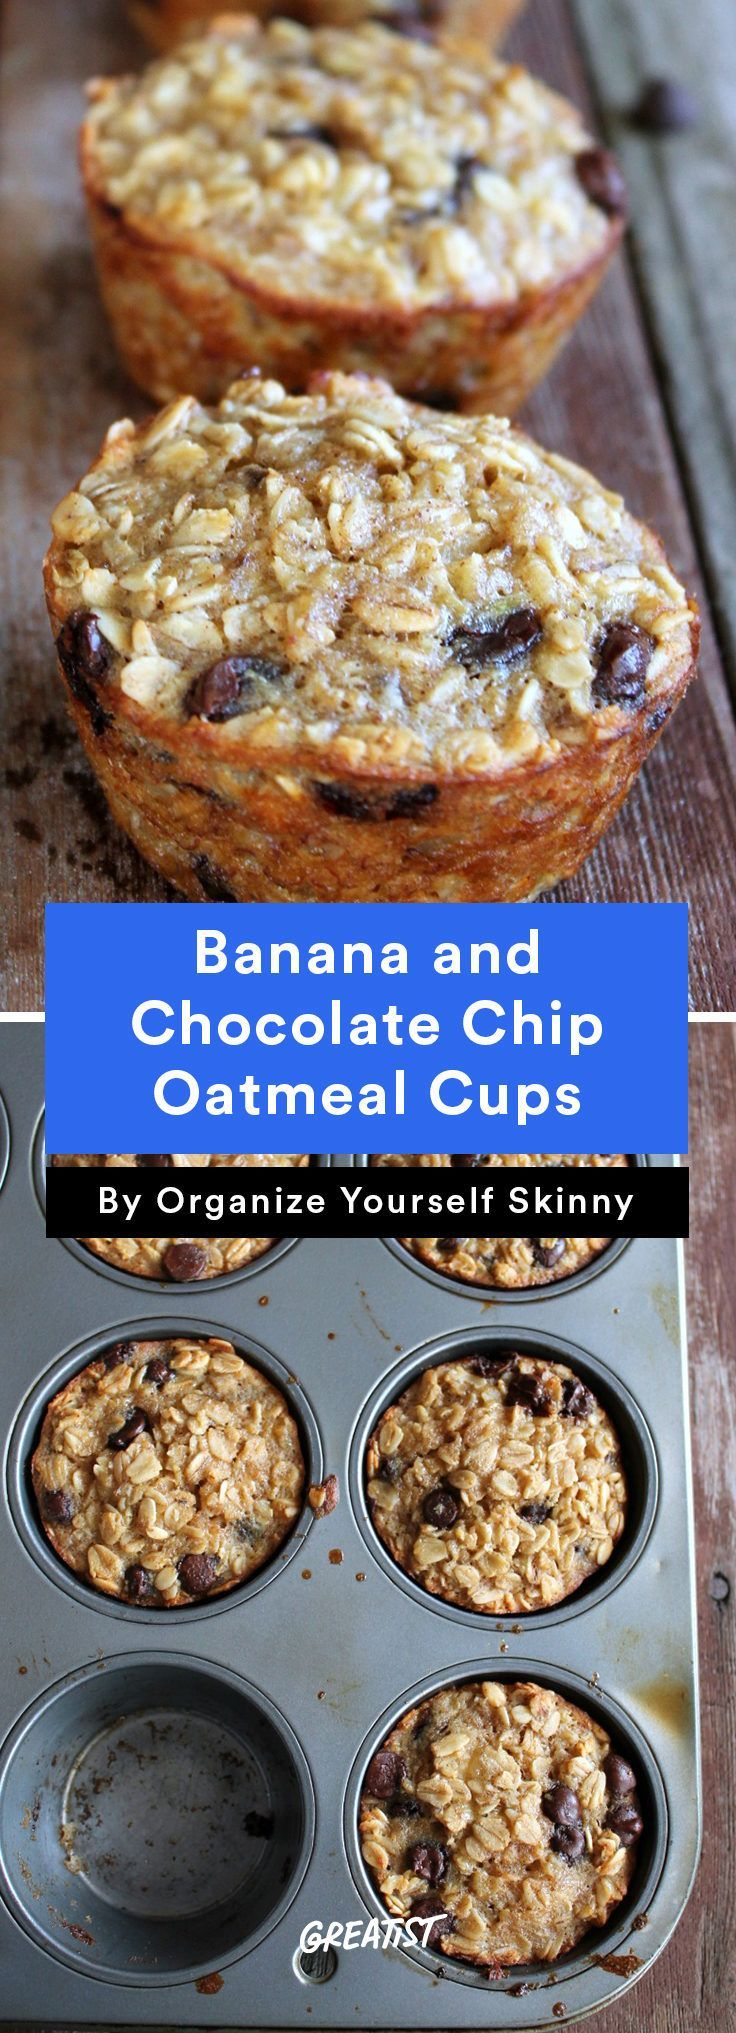 4. Banana and Chocolate Chip Oatmeal Cups #healthy #breakfast #recipes http://greatist.com/...